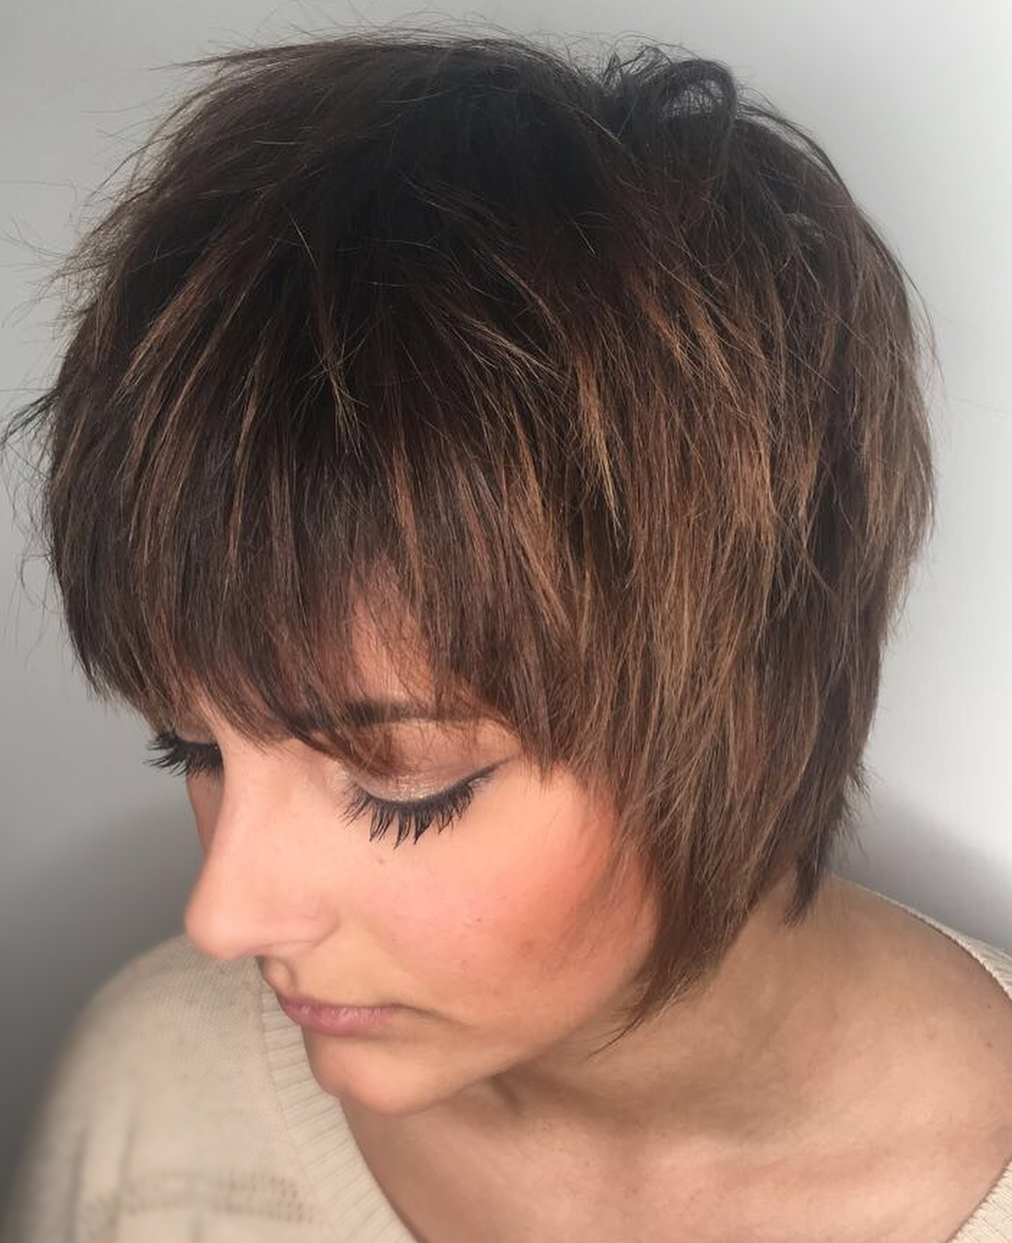 Cute Short Shaggy Hairstyle